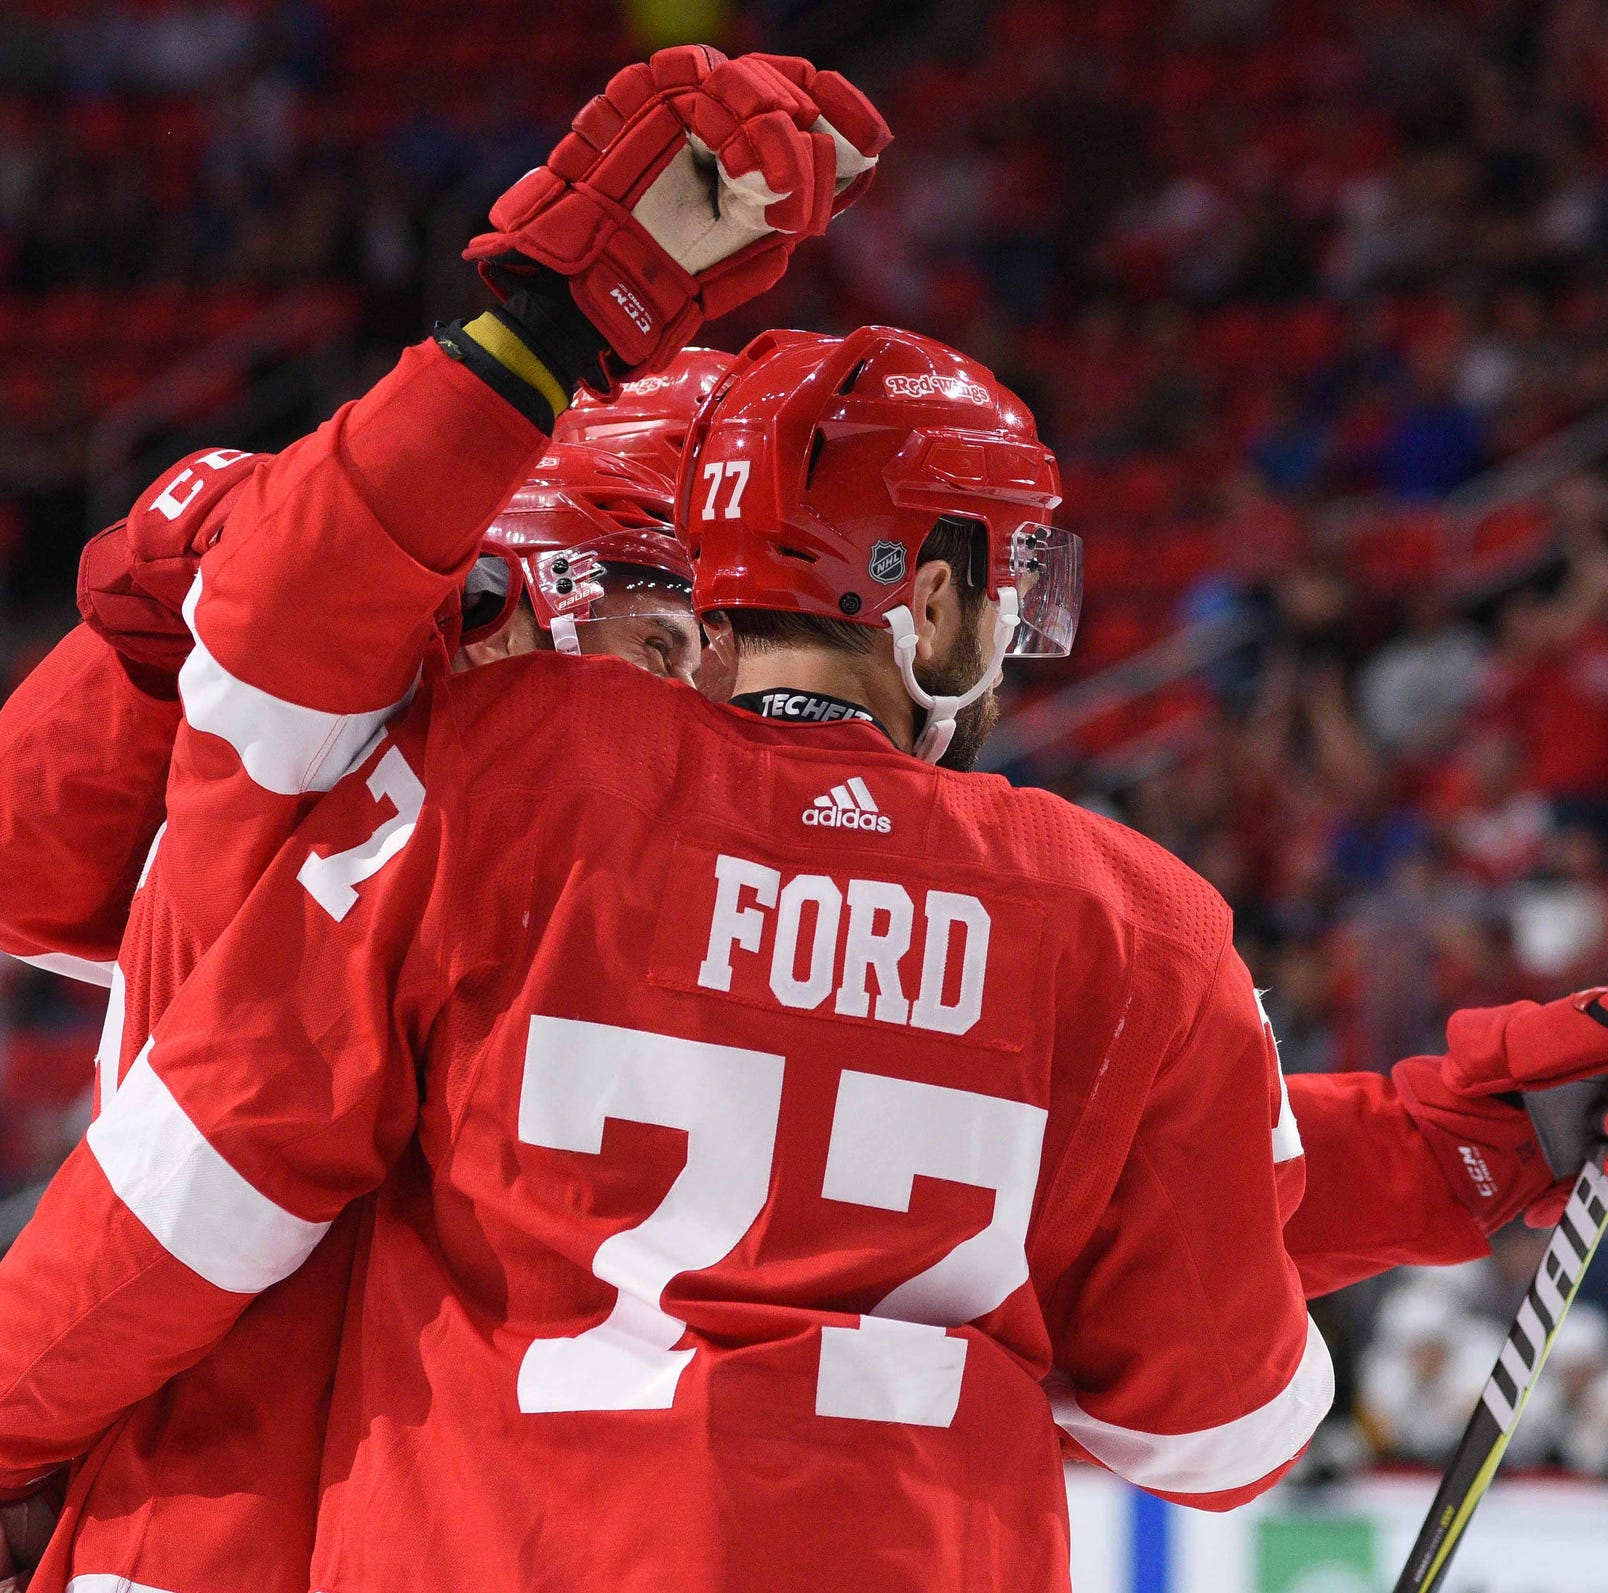 Detroit Red Wings' prospects get taste of NHL hockey in exhibition win